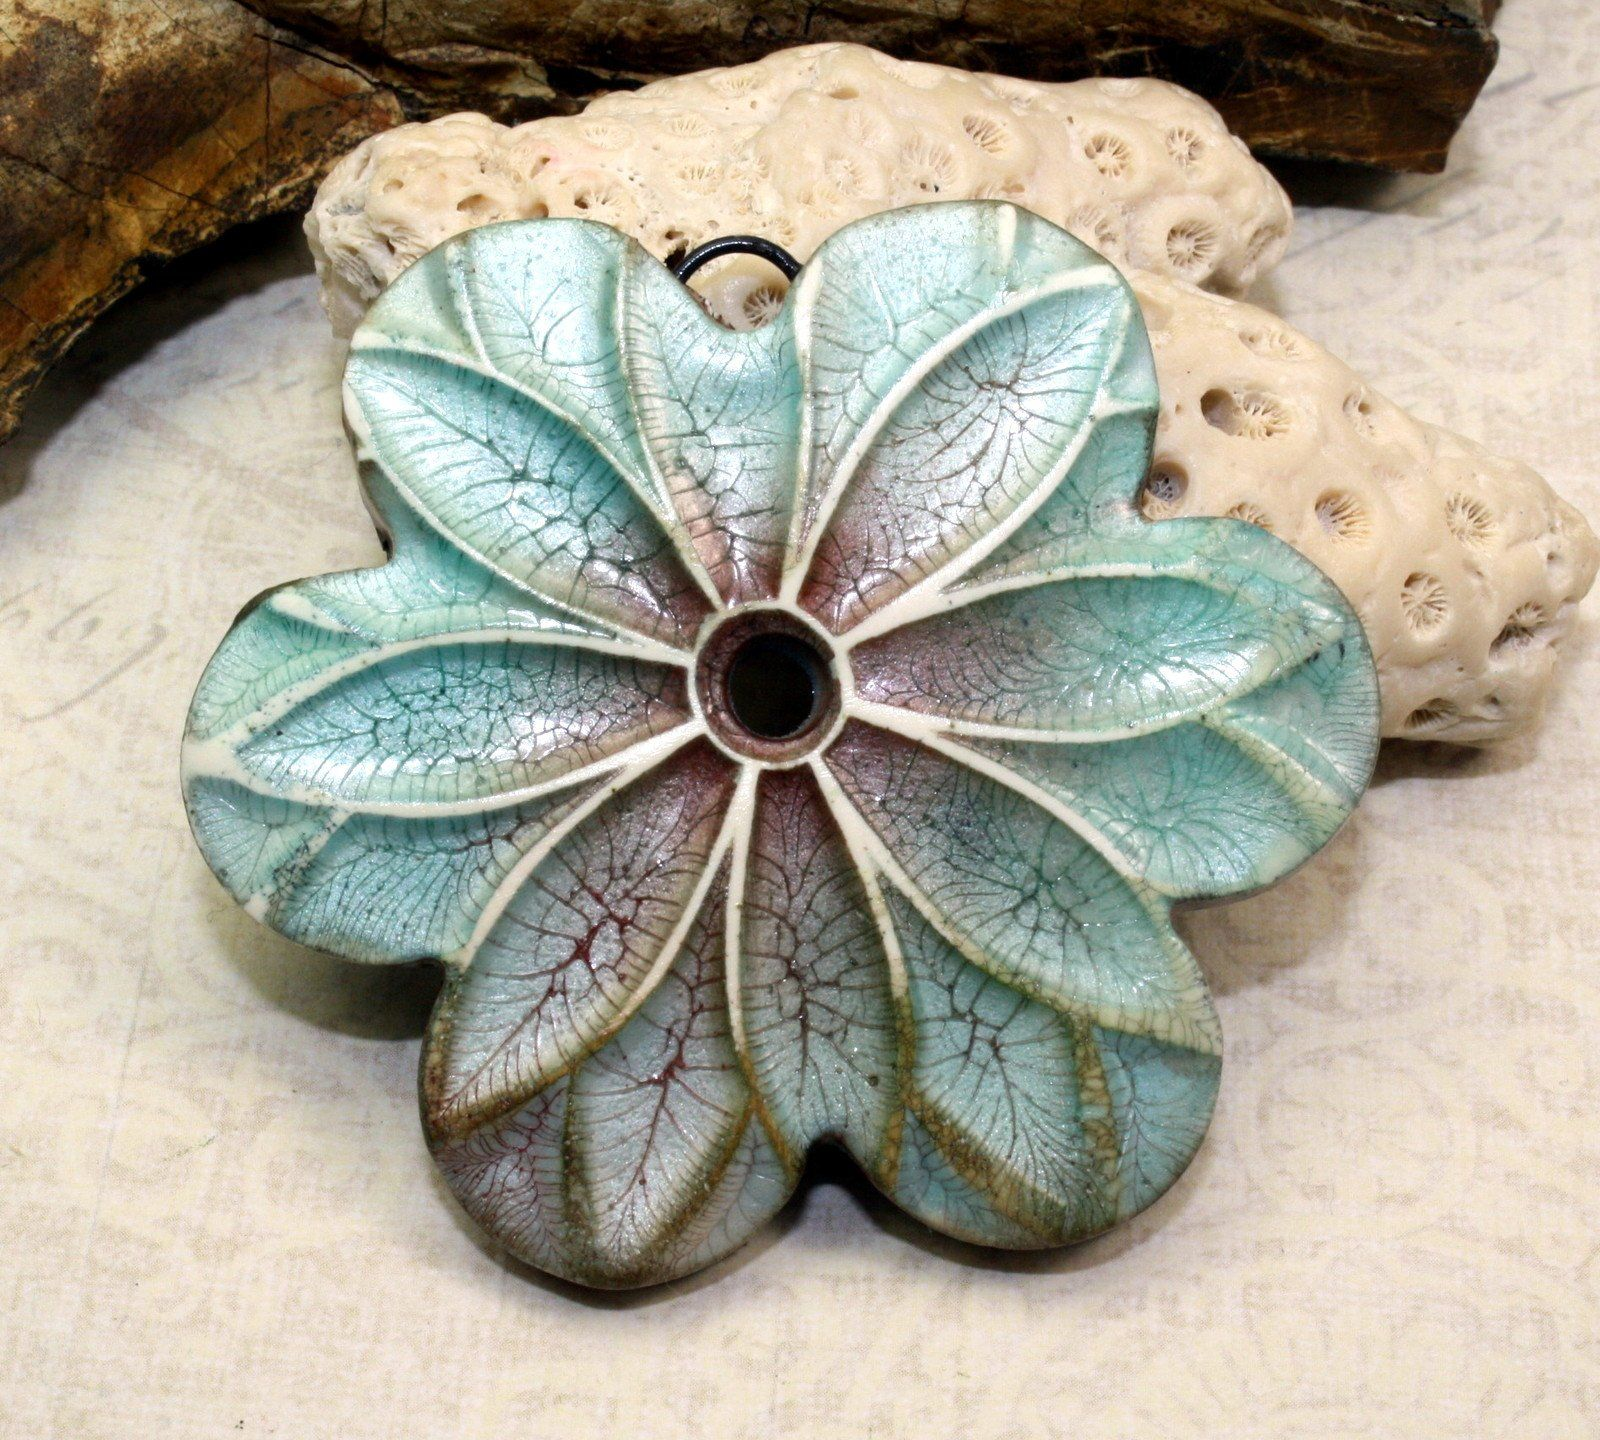 Gear pendant grungy faux ceramic large pendant boho Polymer Clay Ceramic pendant jewelry design component aged worn rustic chic